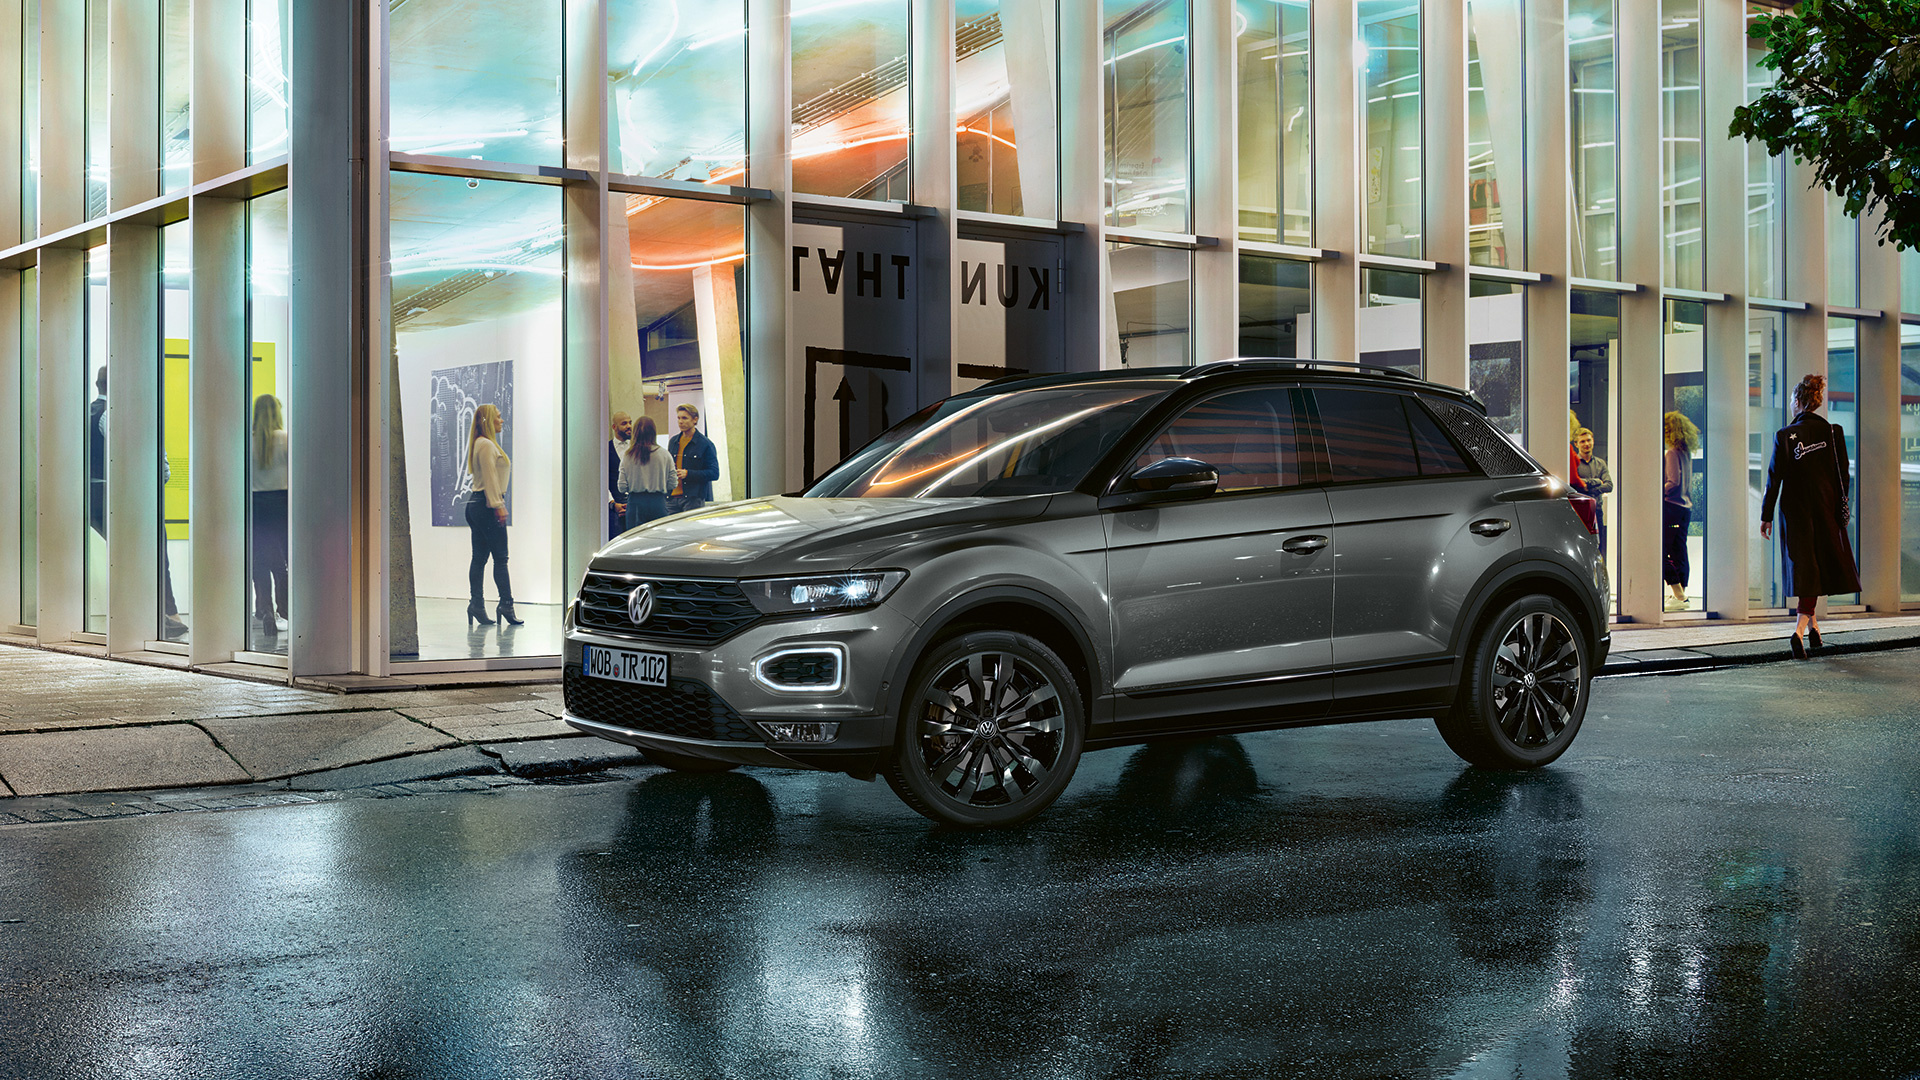 T-Roc is one of VW's most eye-catching models and you'll want the Black Edition more